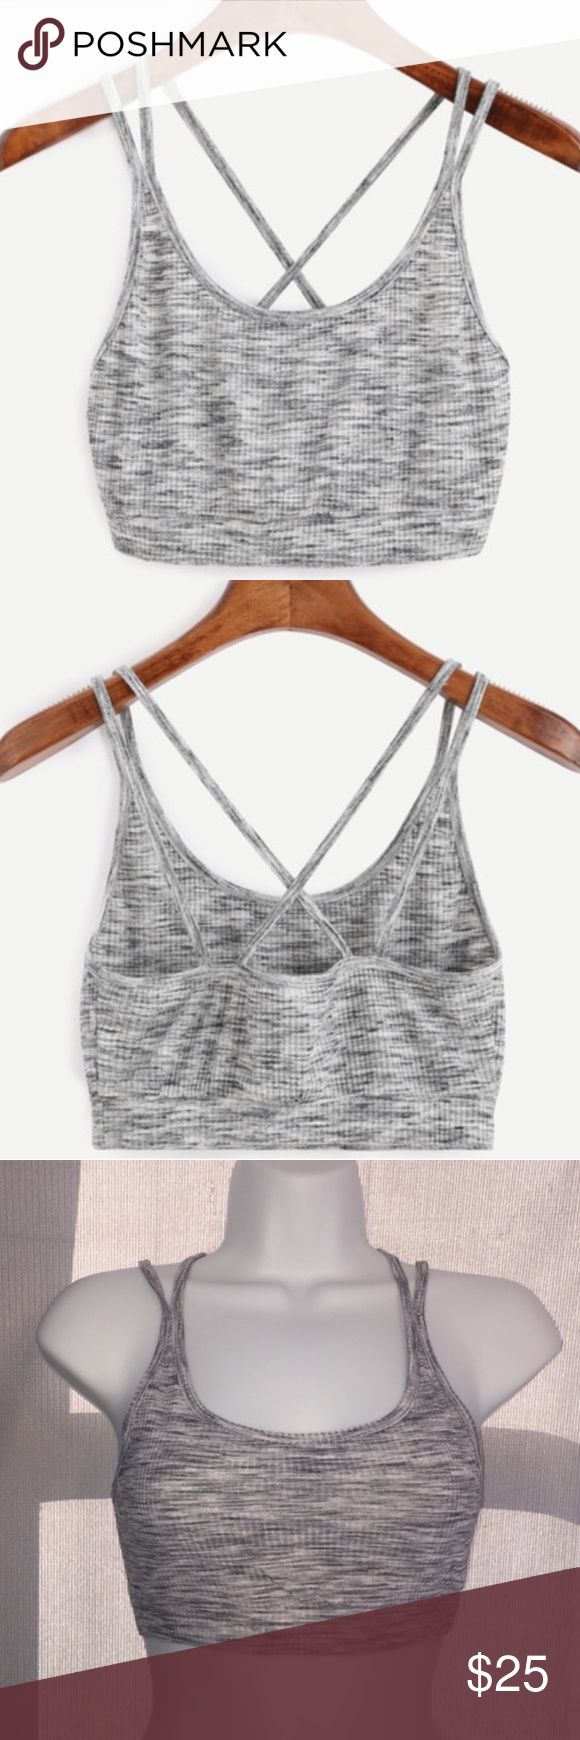 🍂Grey sports bra🍂 ⭐️Brand New in package  ⭐️ Make sure to check the size chart  ⭐️Also great for a work out  ⭐️Casual💋listed as nasty gal for attention💋 Nasty Gal Intimates & Sleepwear Bras